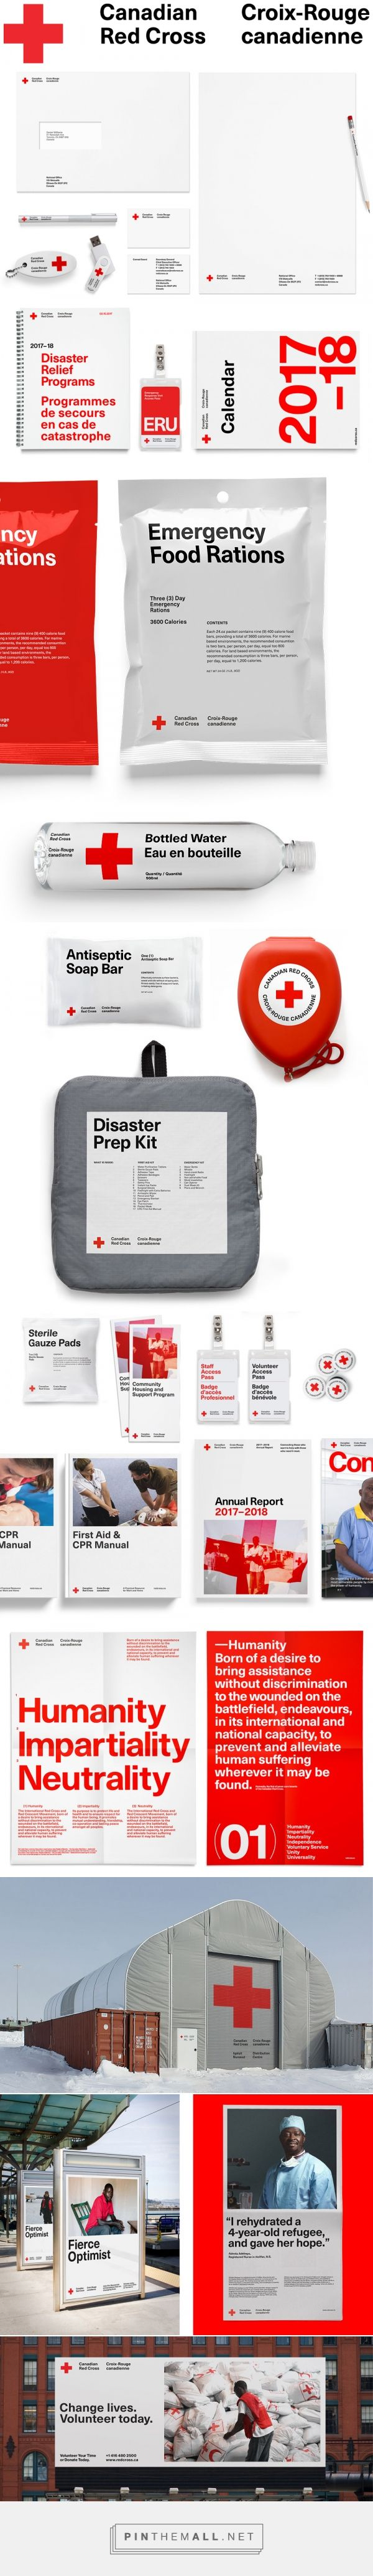 Brand New: New Logo and Identity for Canadian Red Cross by Concrete... - a grouped images picture - Pin Them All